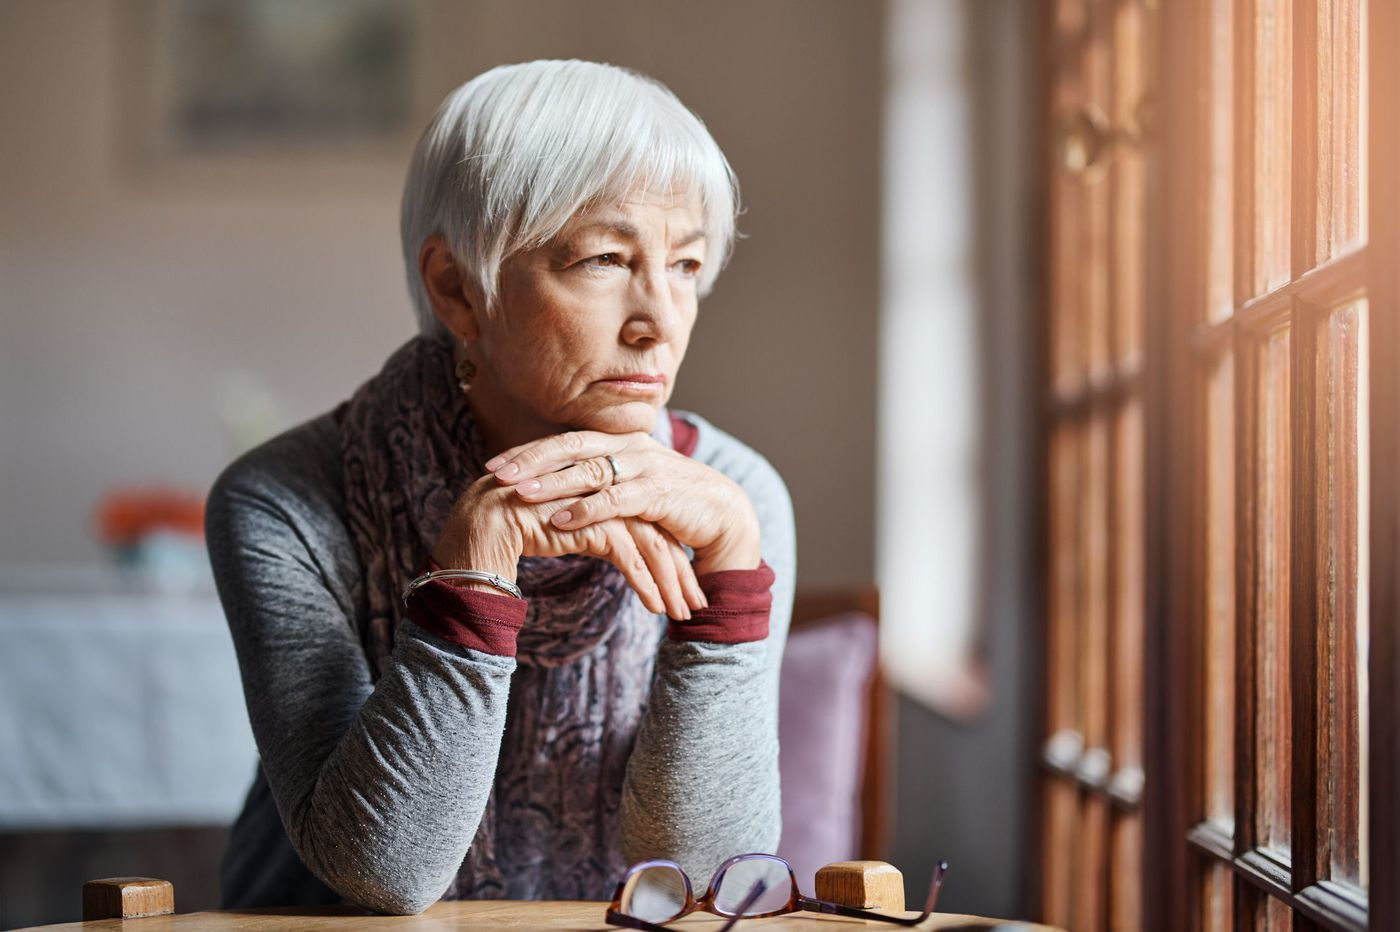 The older you get the more time you spend alone. That can mean more health problems.